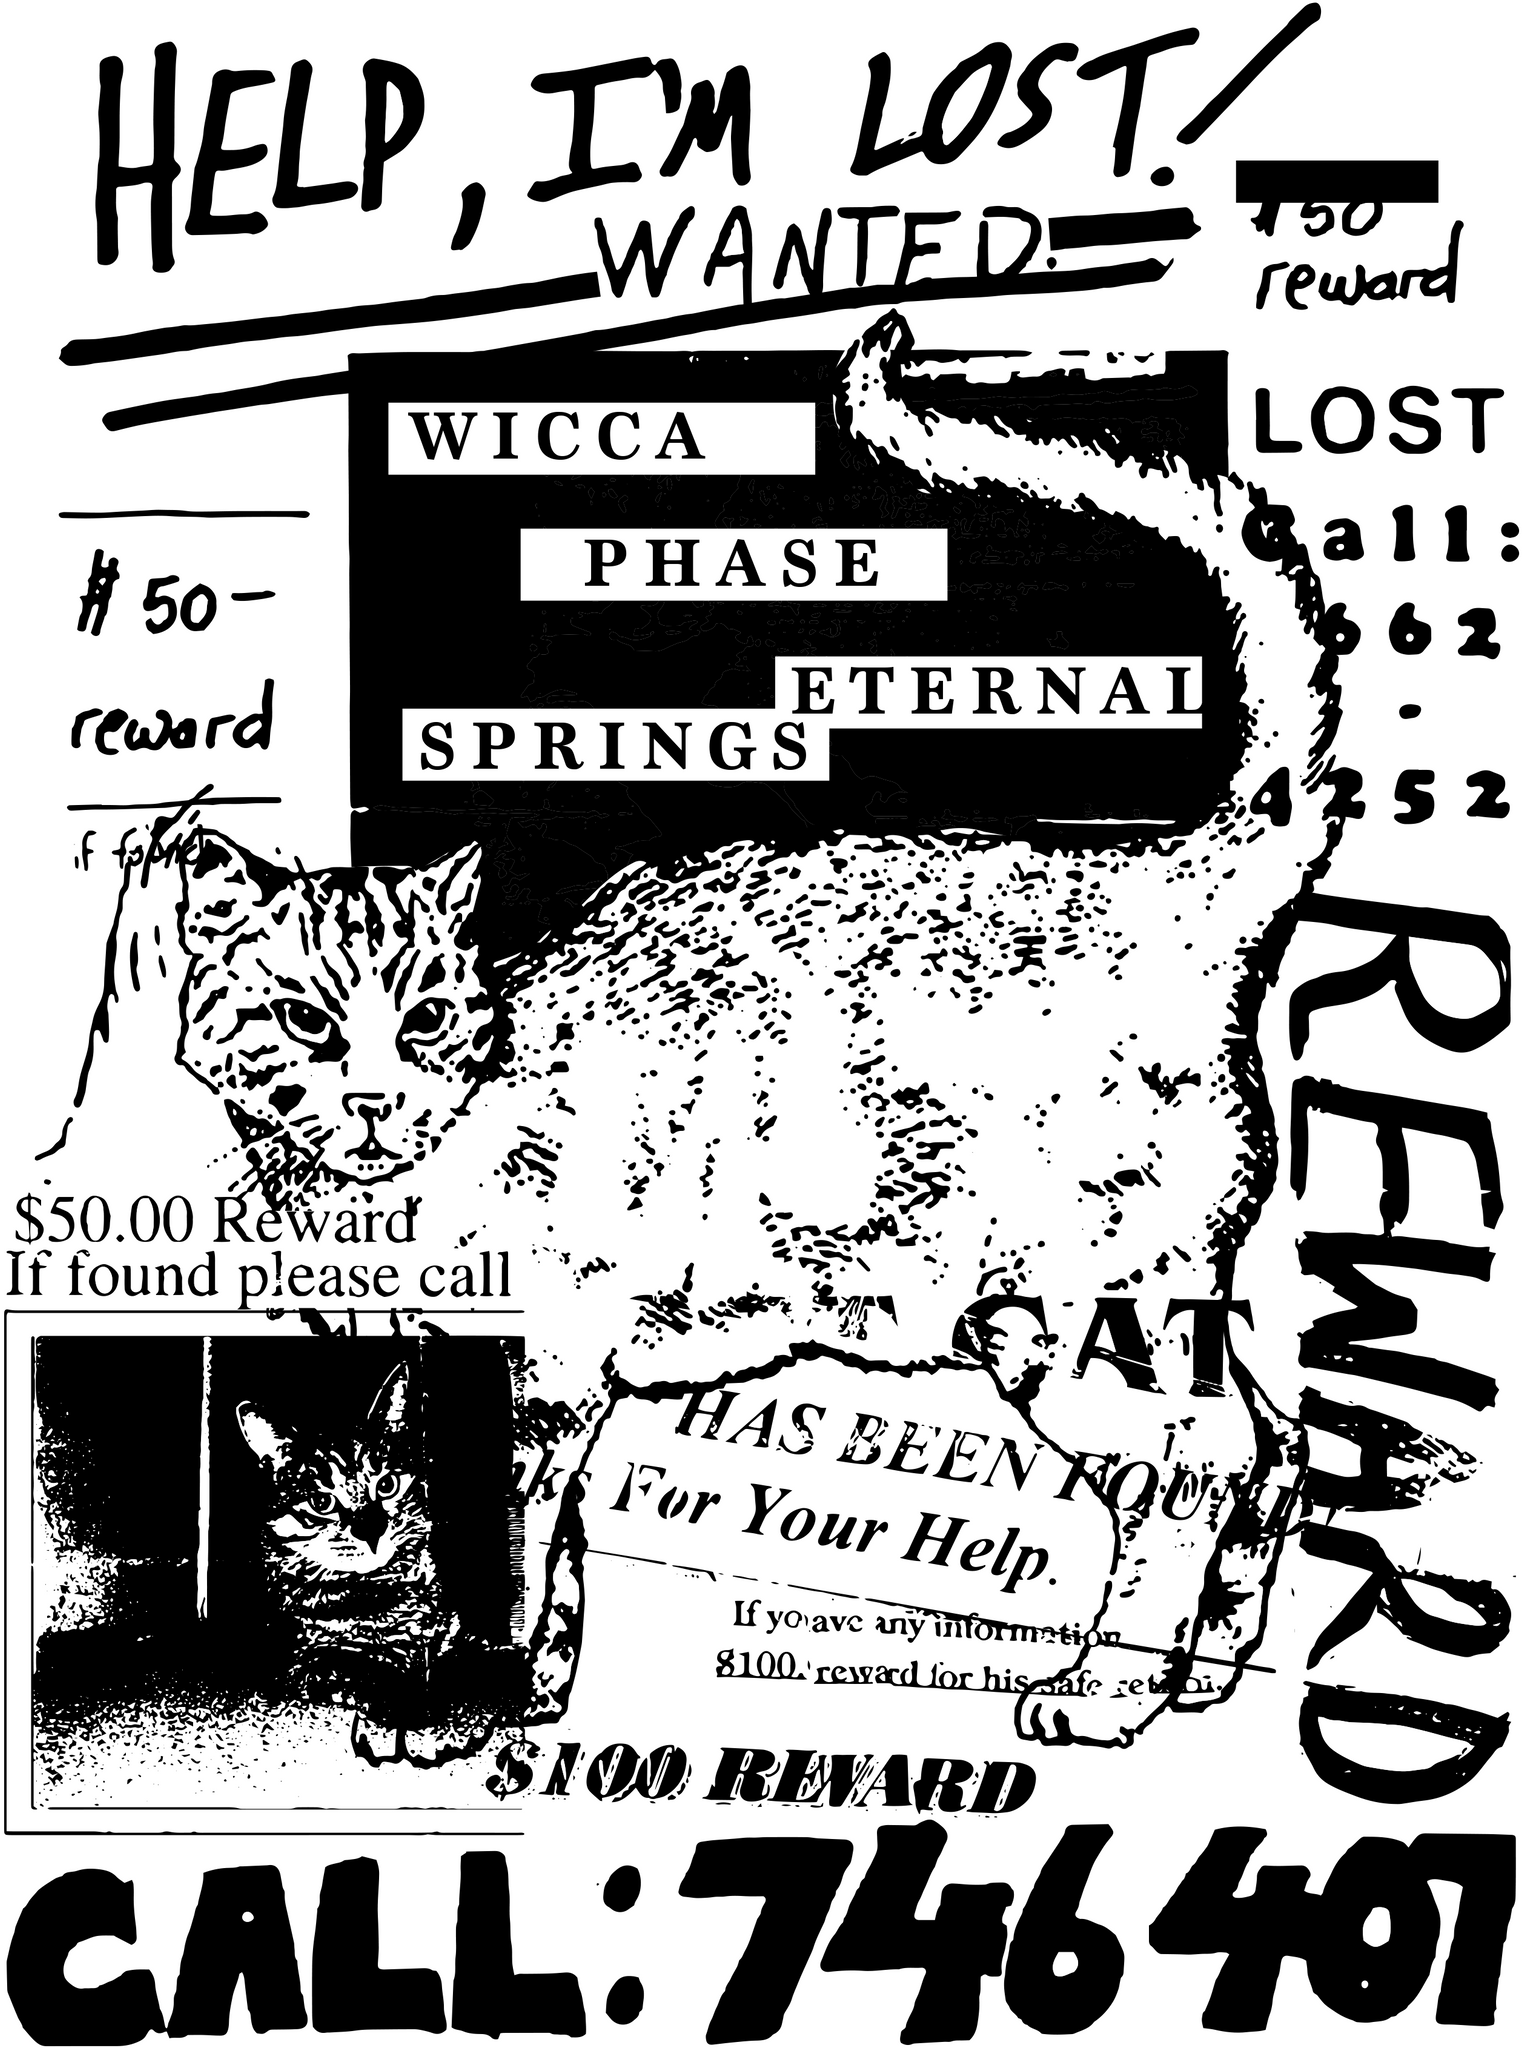 WICCA PHASE SPRINGS ETERNAL - Lost Cat Sticker